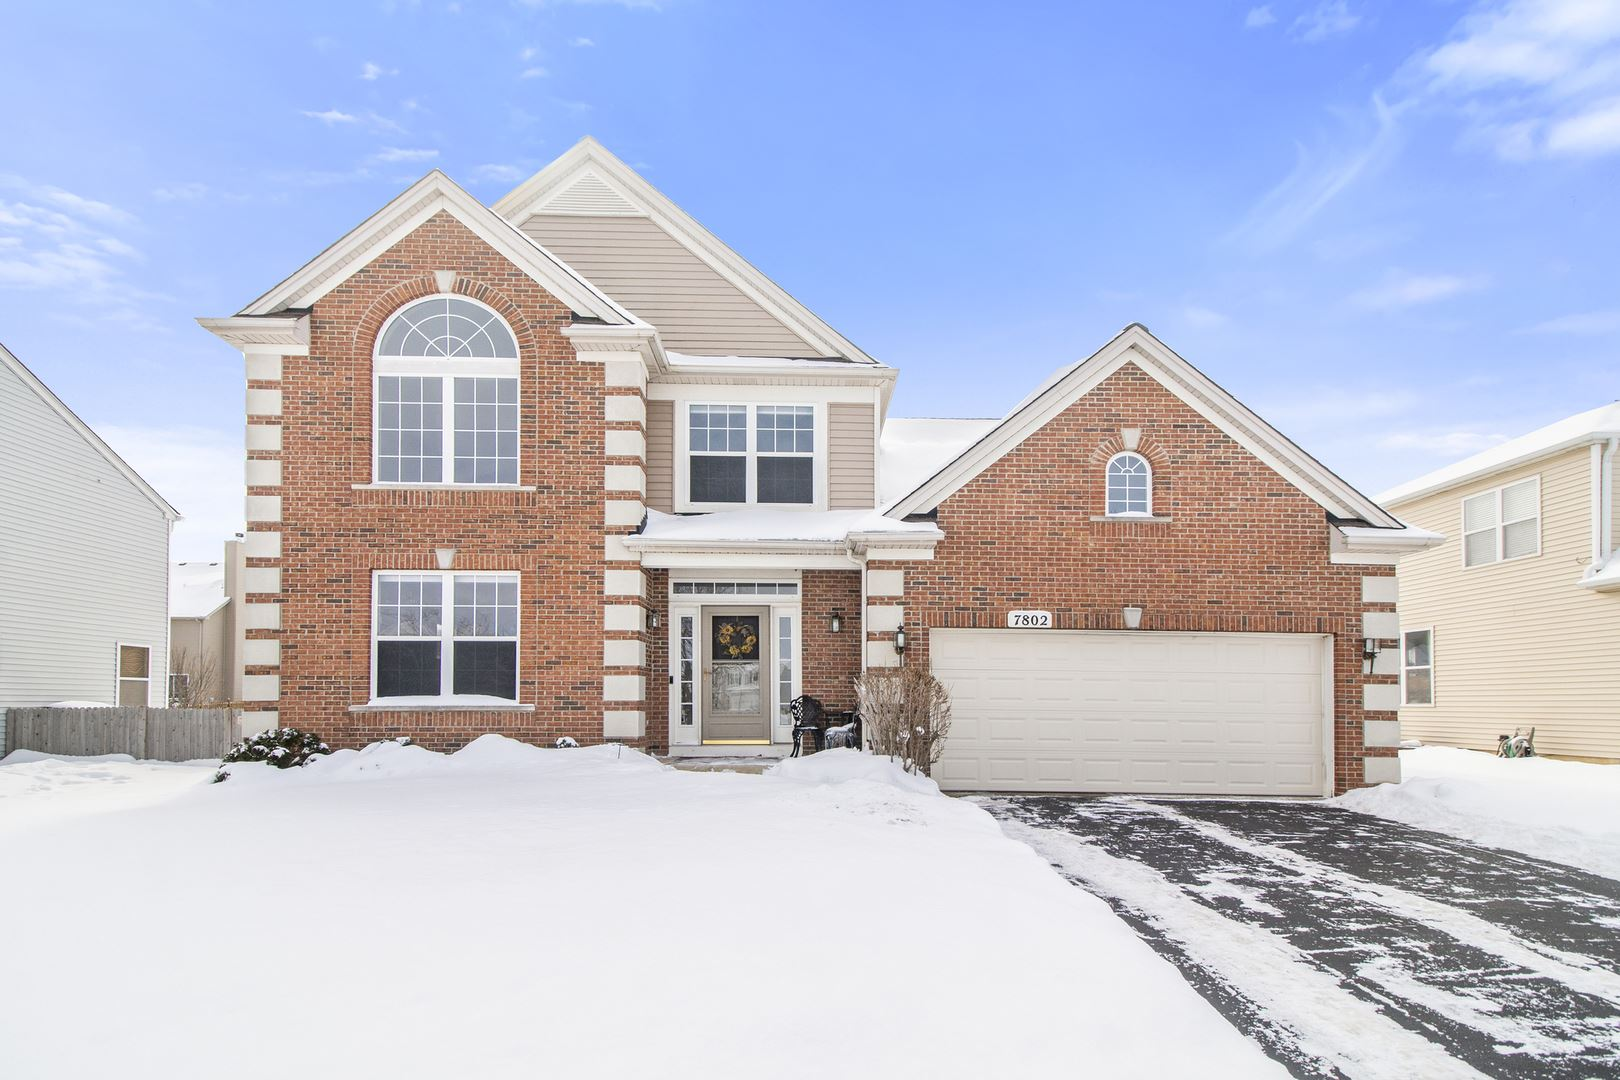 Photo of 7802 Springside Drive, Plainfield, IL 60586 (MLS # 10997759)